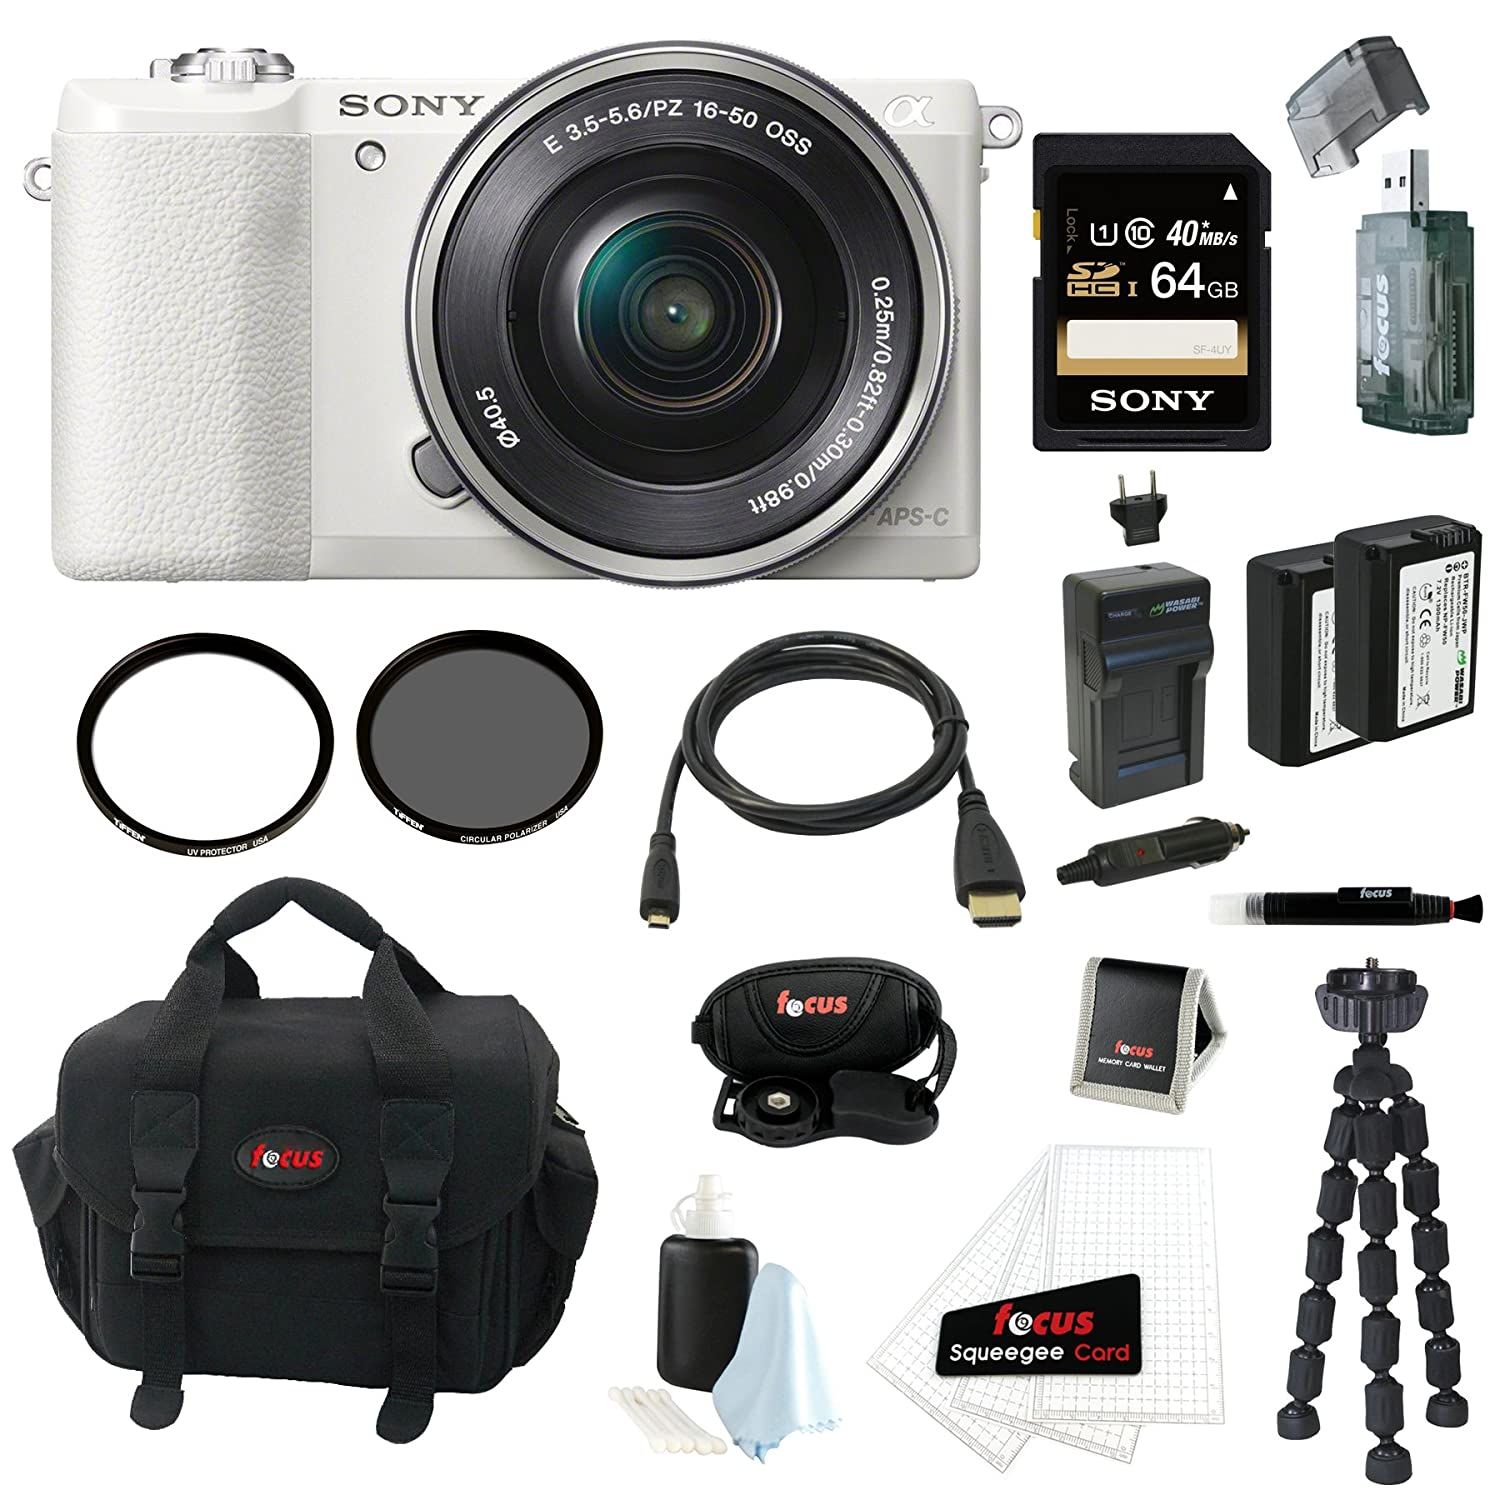 Sony Alpha a5100 ILCE5100 ILCE5100L/W with 16-50mm Lens 24MP Mirrorless Interchangeable Lens Digital Camera (White) + Sony 64GB Class 10 Memory Card  ..